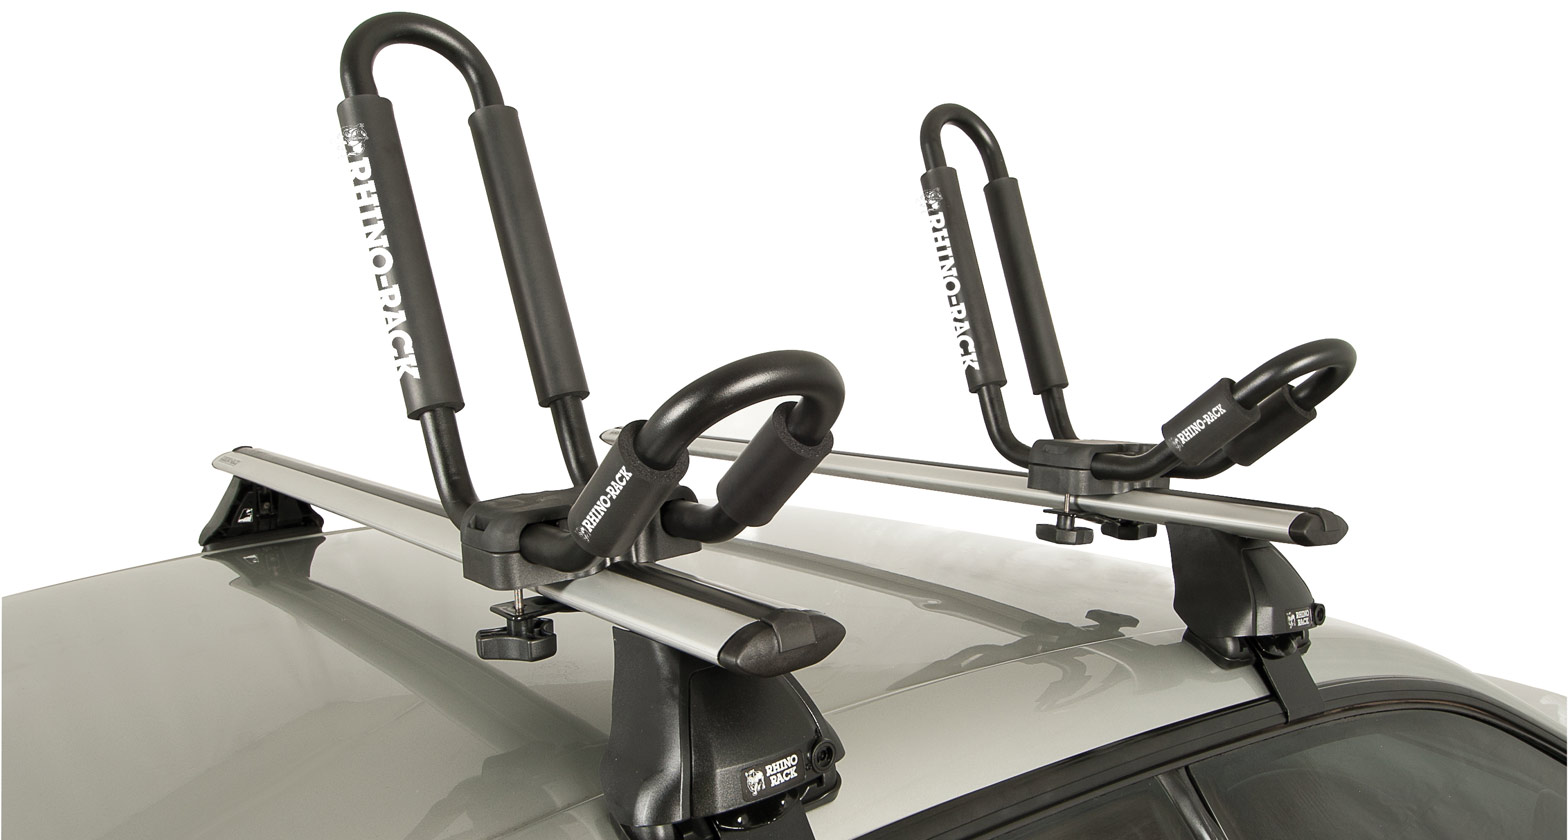 S510 Fixed J Style Kayak Carrier Rhino Rack